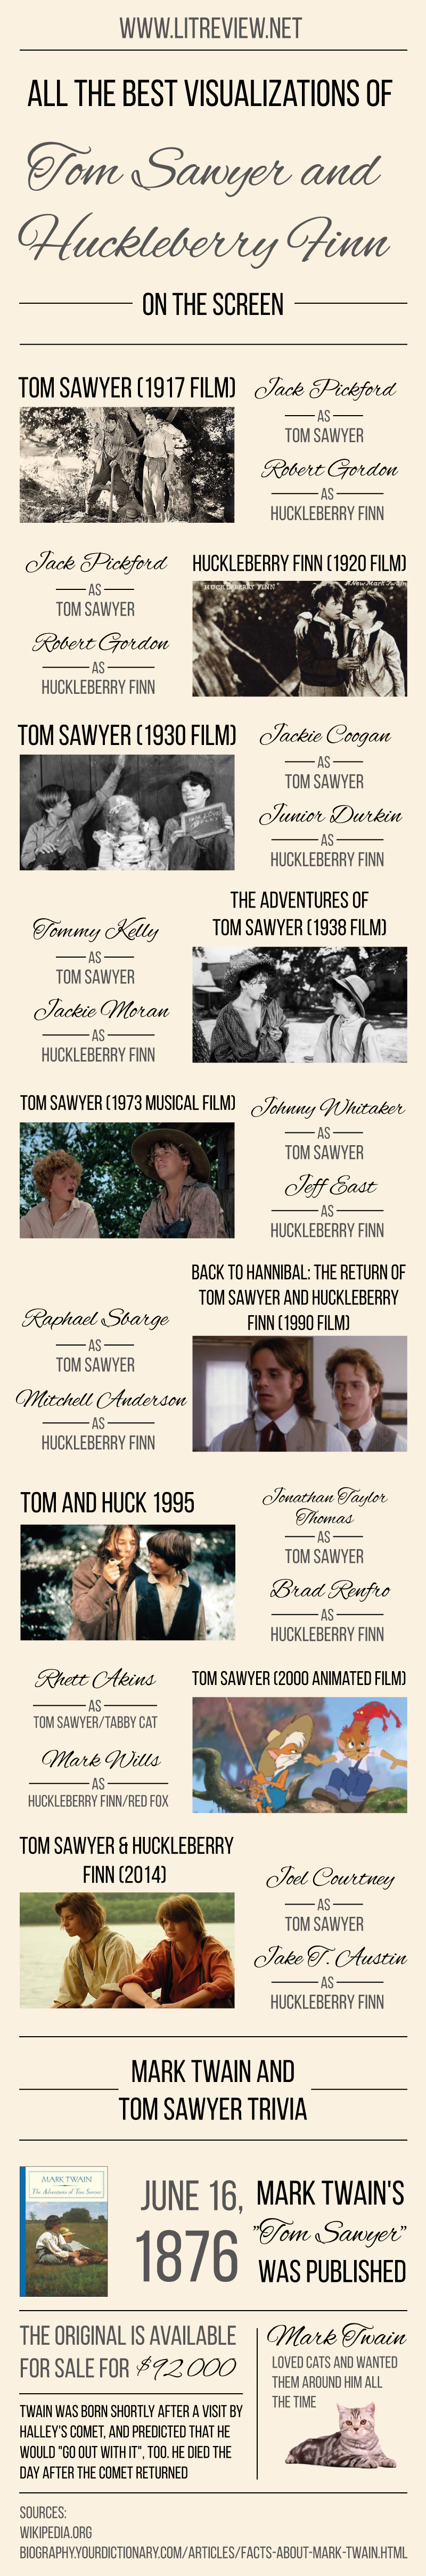 Evolution of Tom Sawyer Image in Movie Adaptations Throughout the Years